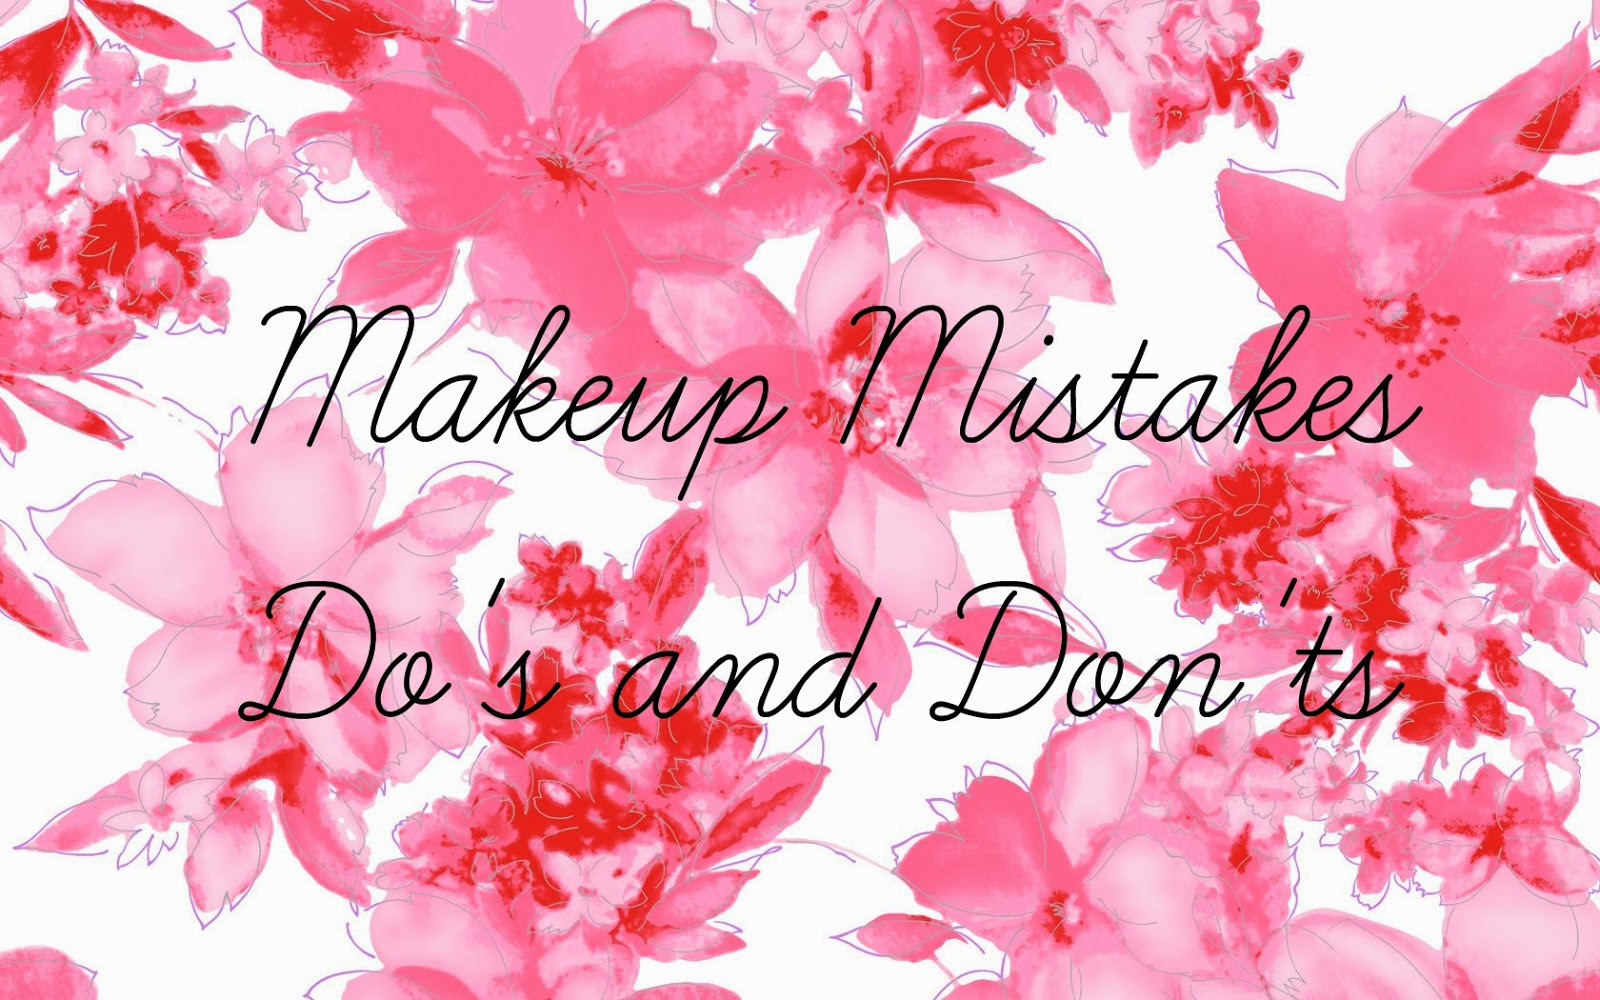 Makeup Mistakes Do's and Don'ts